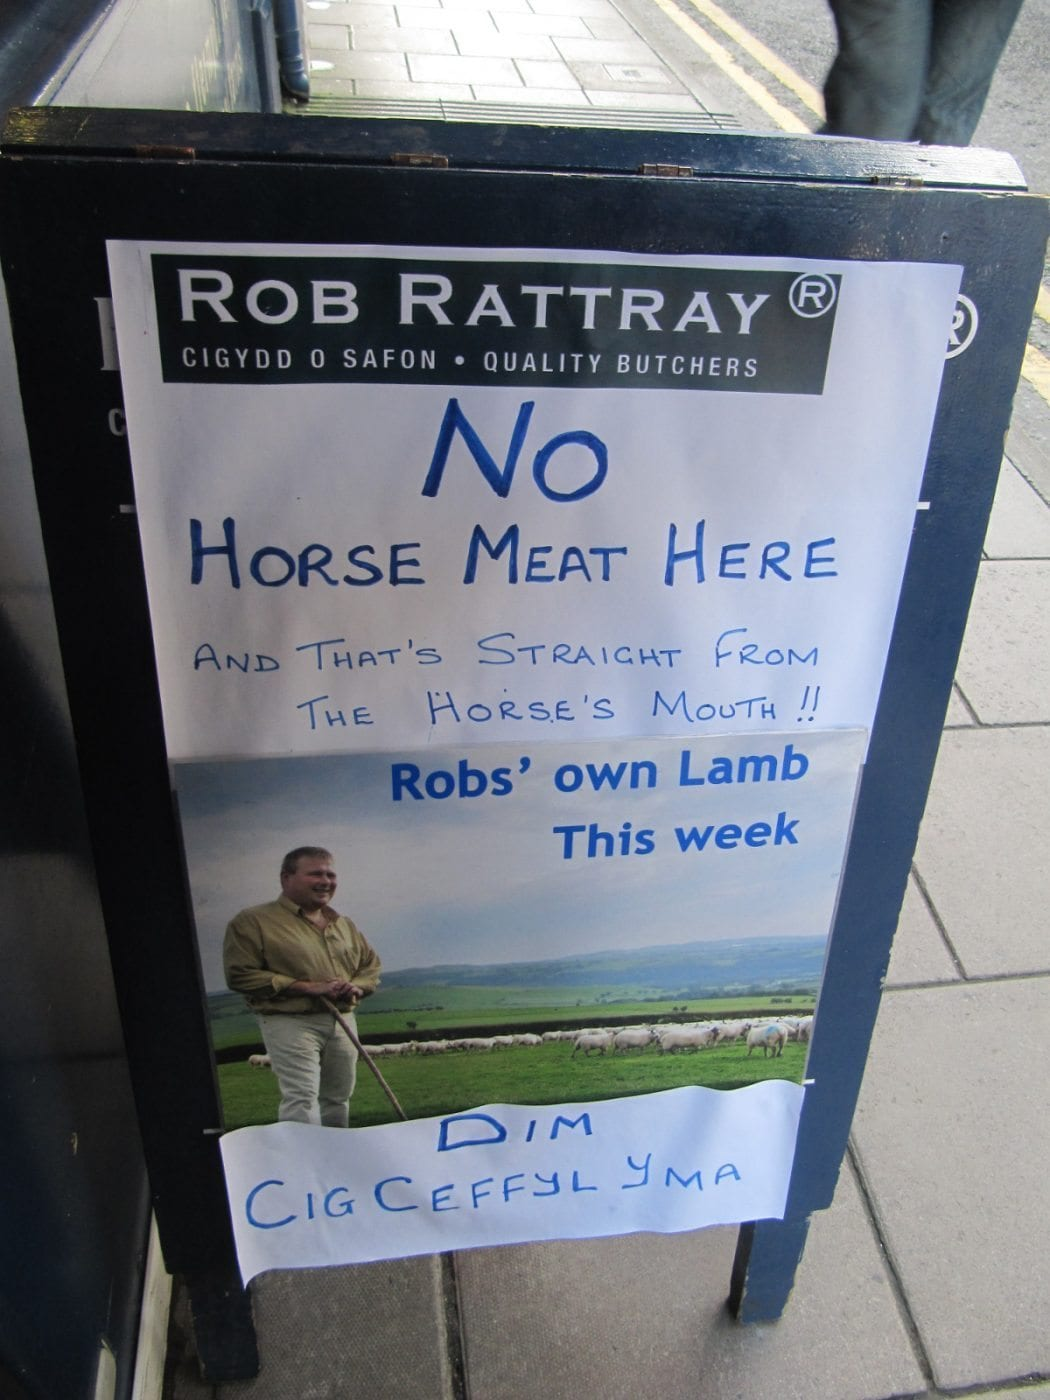 No Horse Meat Here